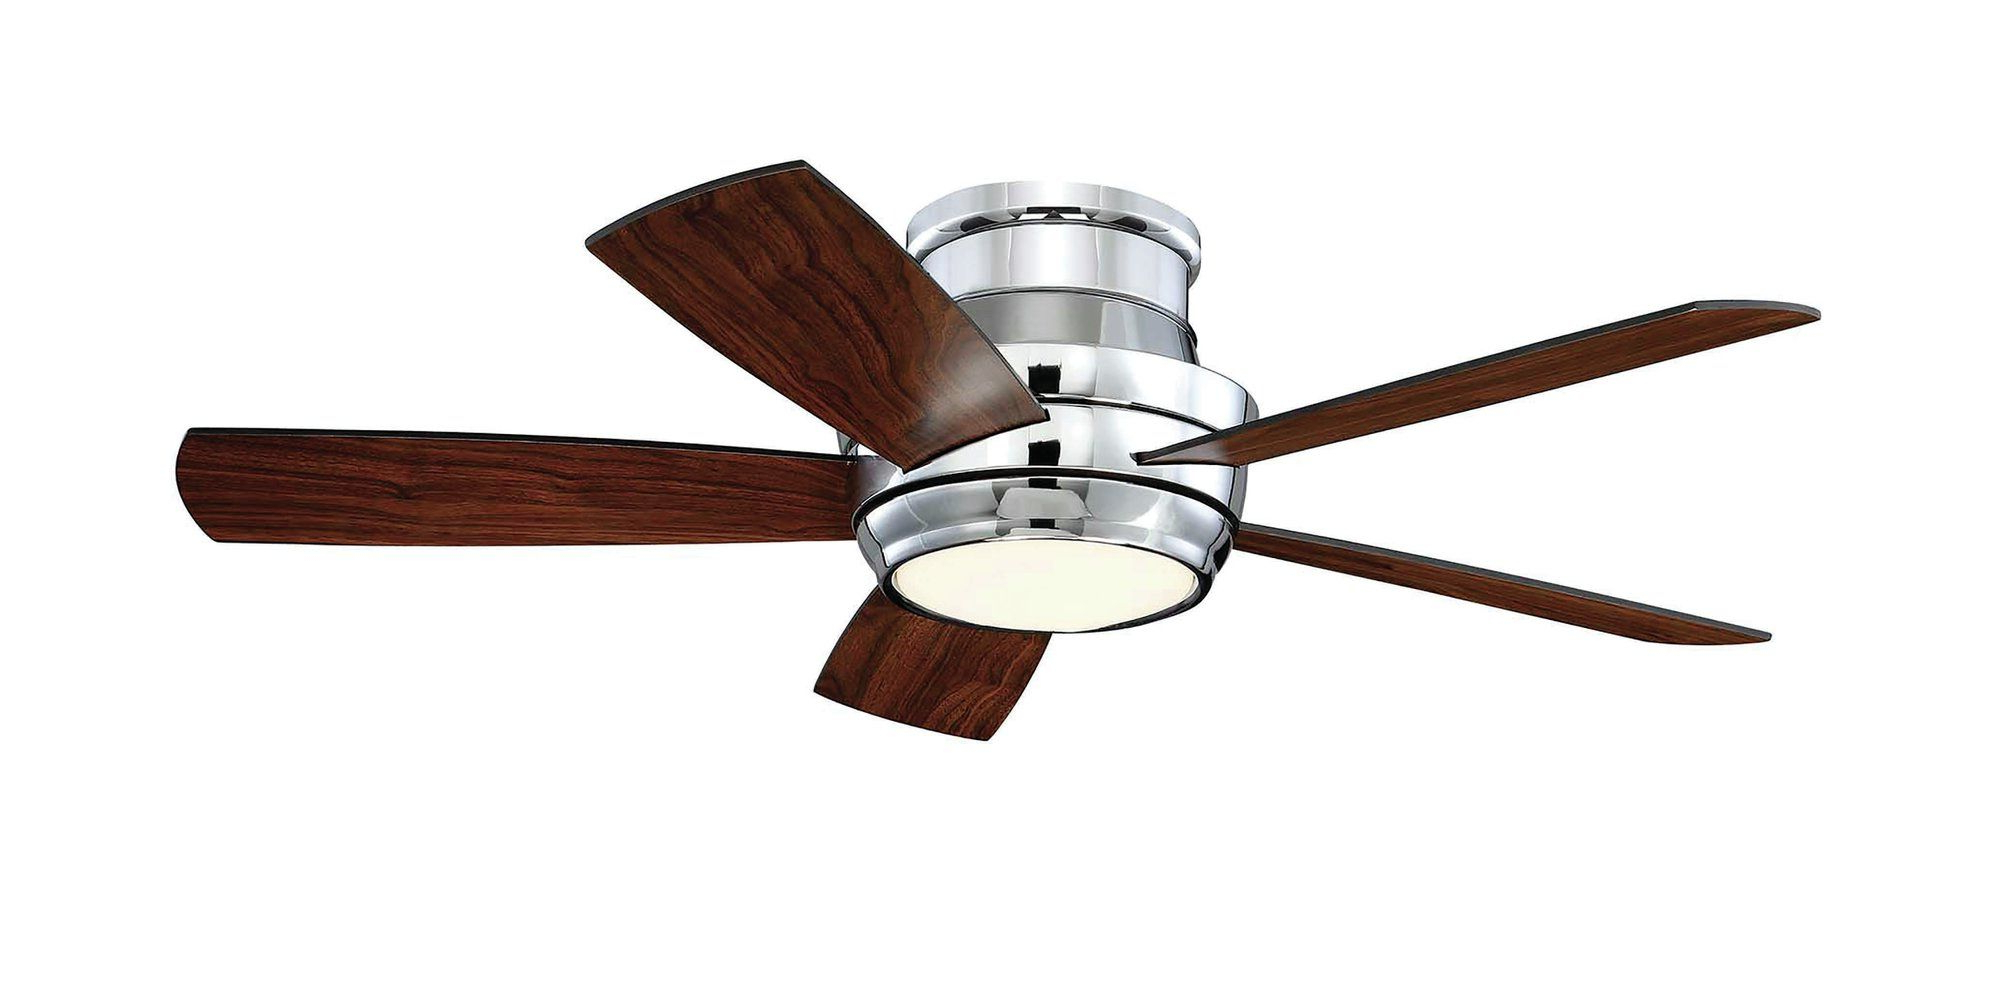 "Cedarton Hugger 5 Blade Led Ceiling Fans Regarding Newest Contemporary 44"" Cedarton Hugger 5 Blade Ceiling Fan With (View 4 of 20)"